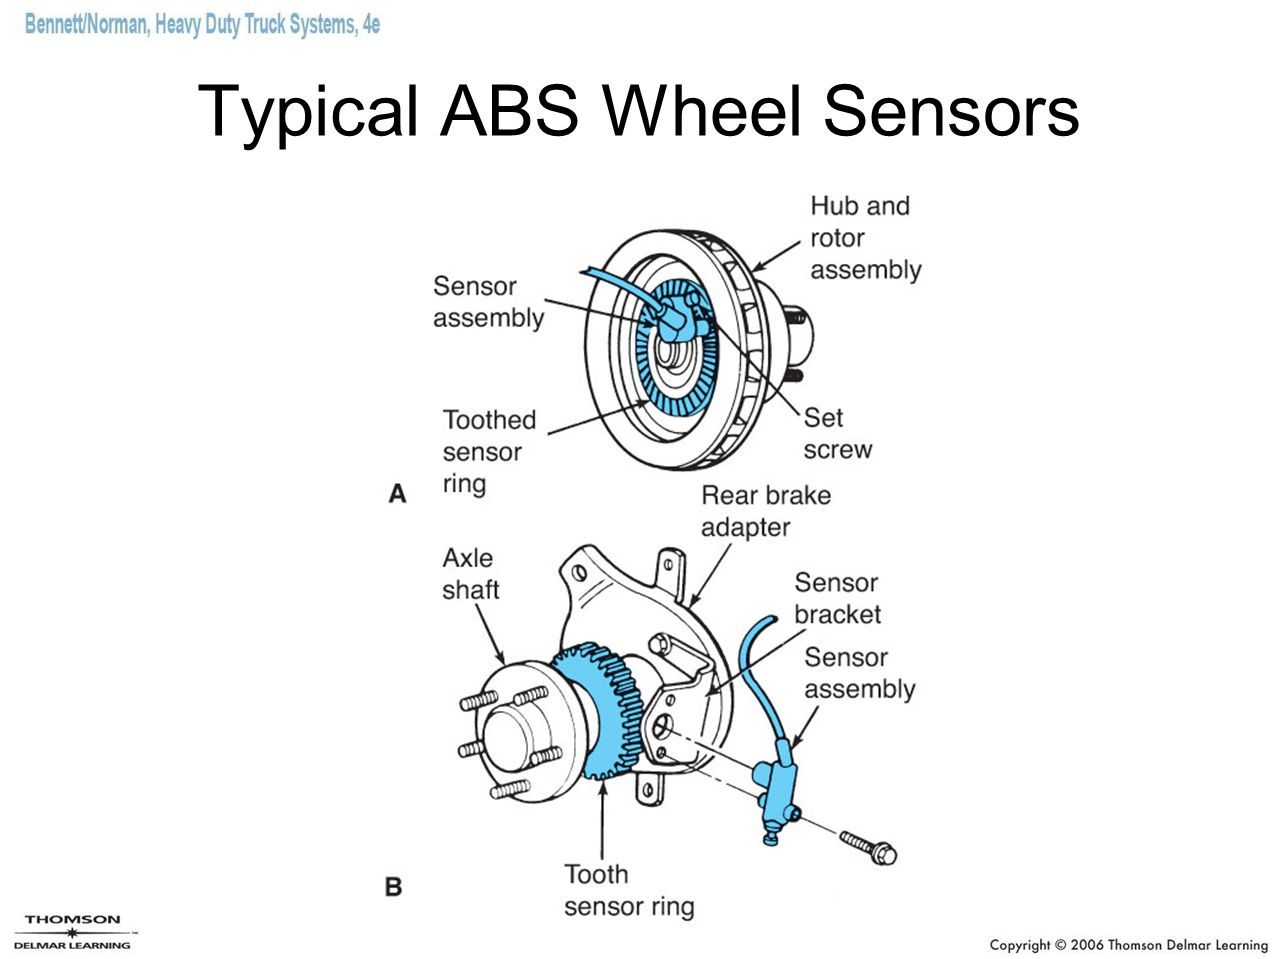 Typical ABS Wheel Sensors